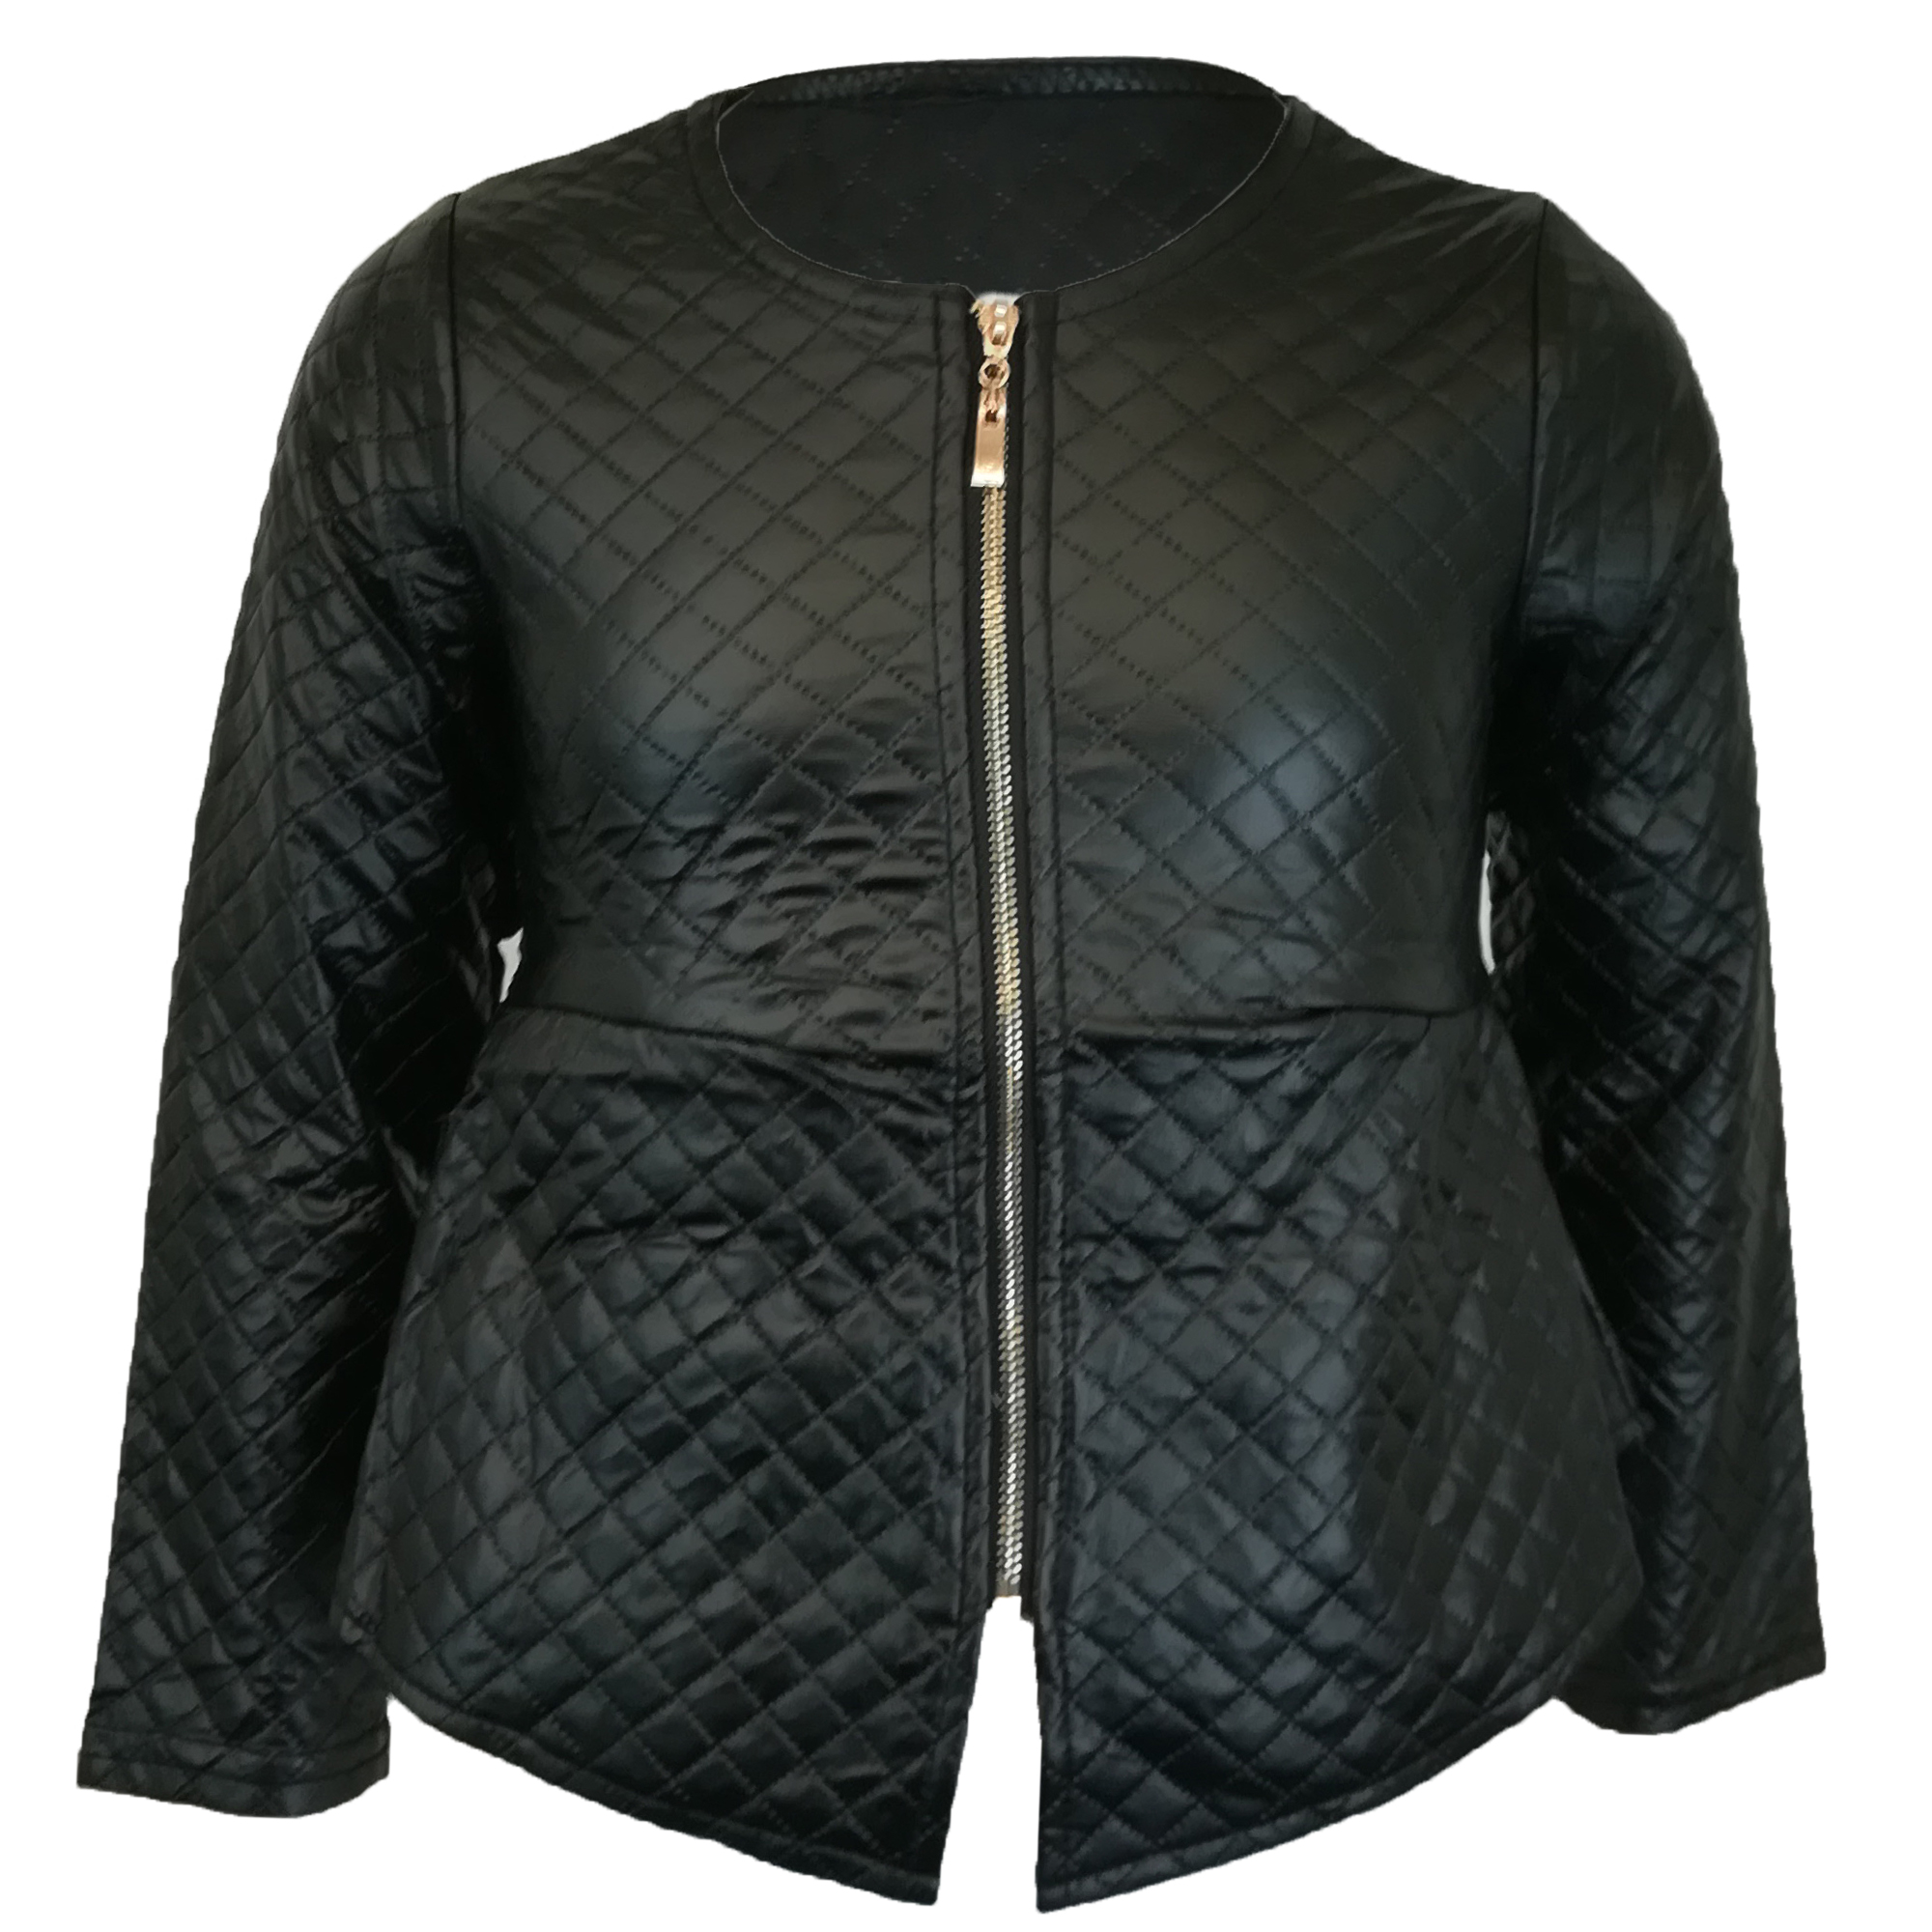 7b741c01586 Details about Girls Biker Jacket Kids Diamond Quilted Baseball Style PVC  Leather Look Summer